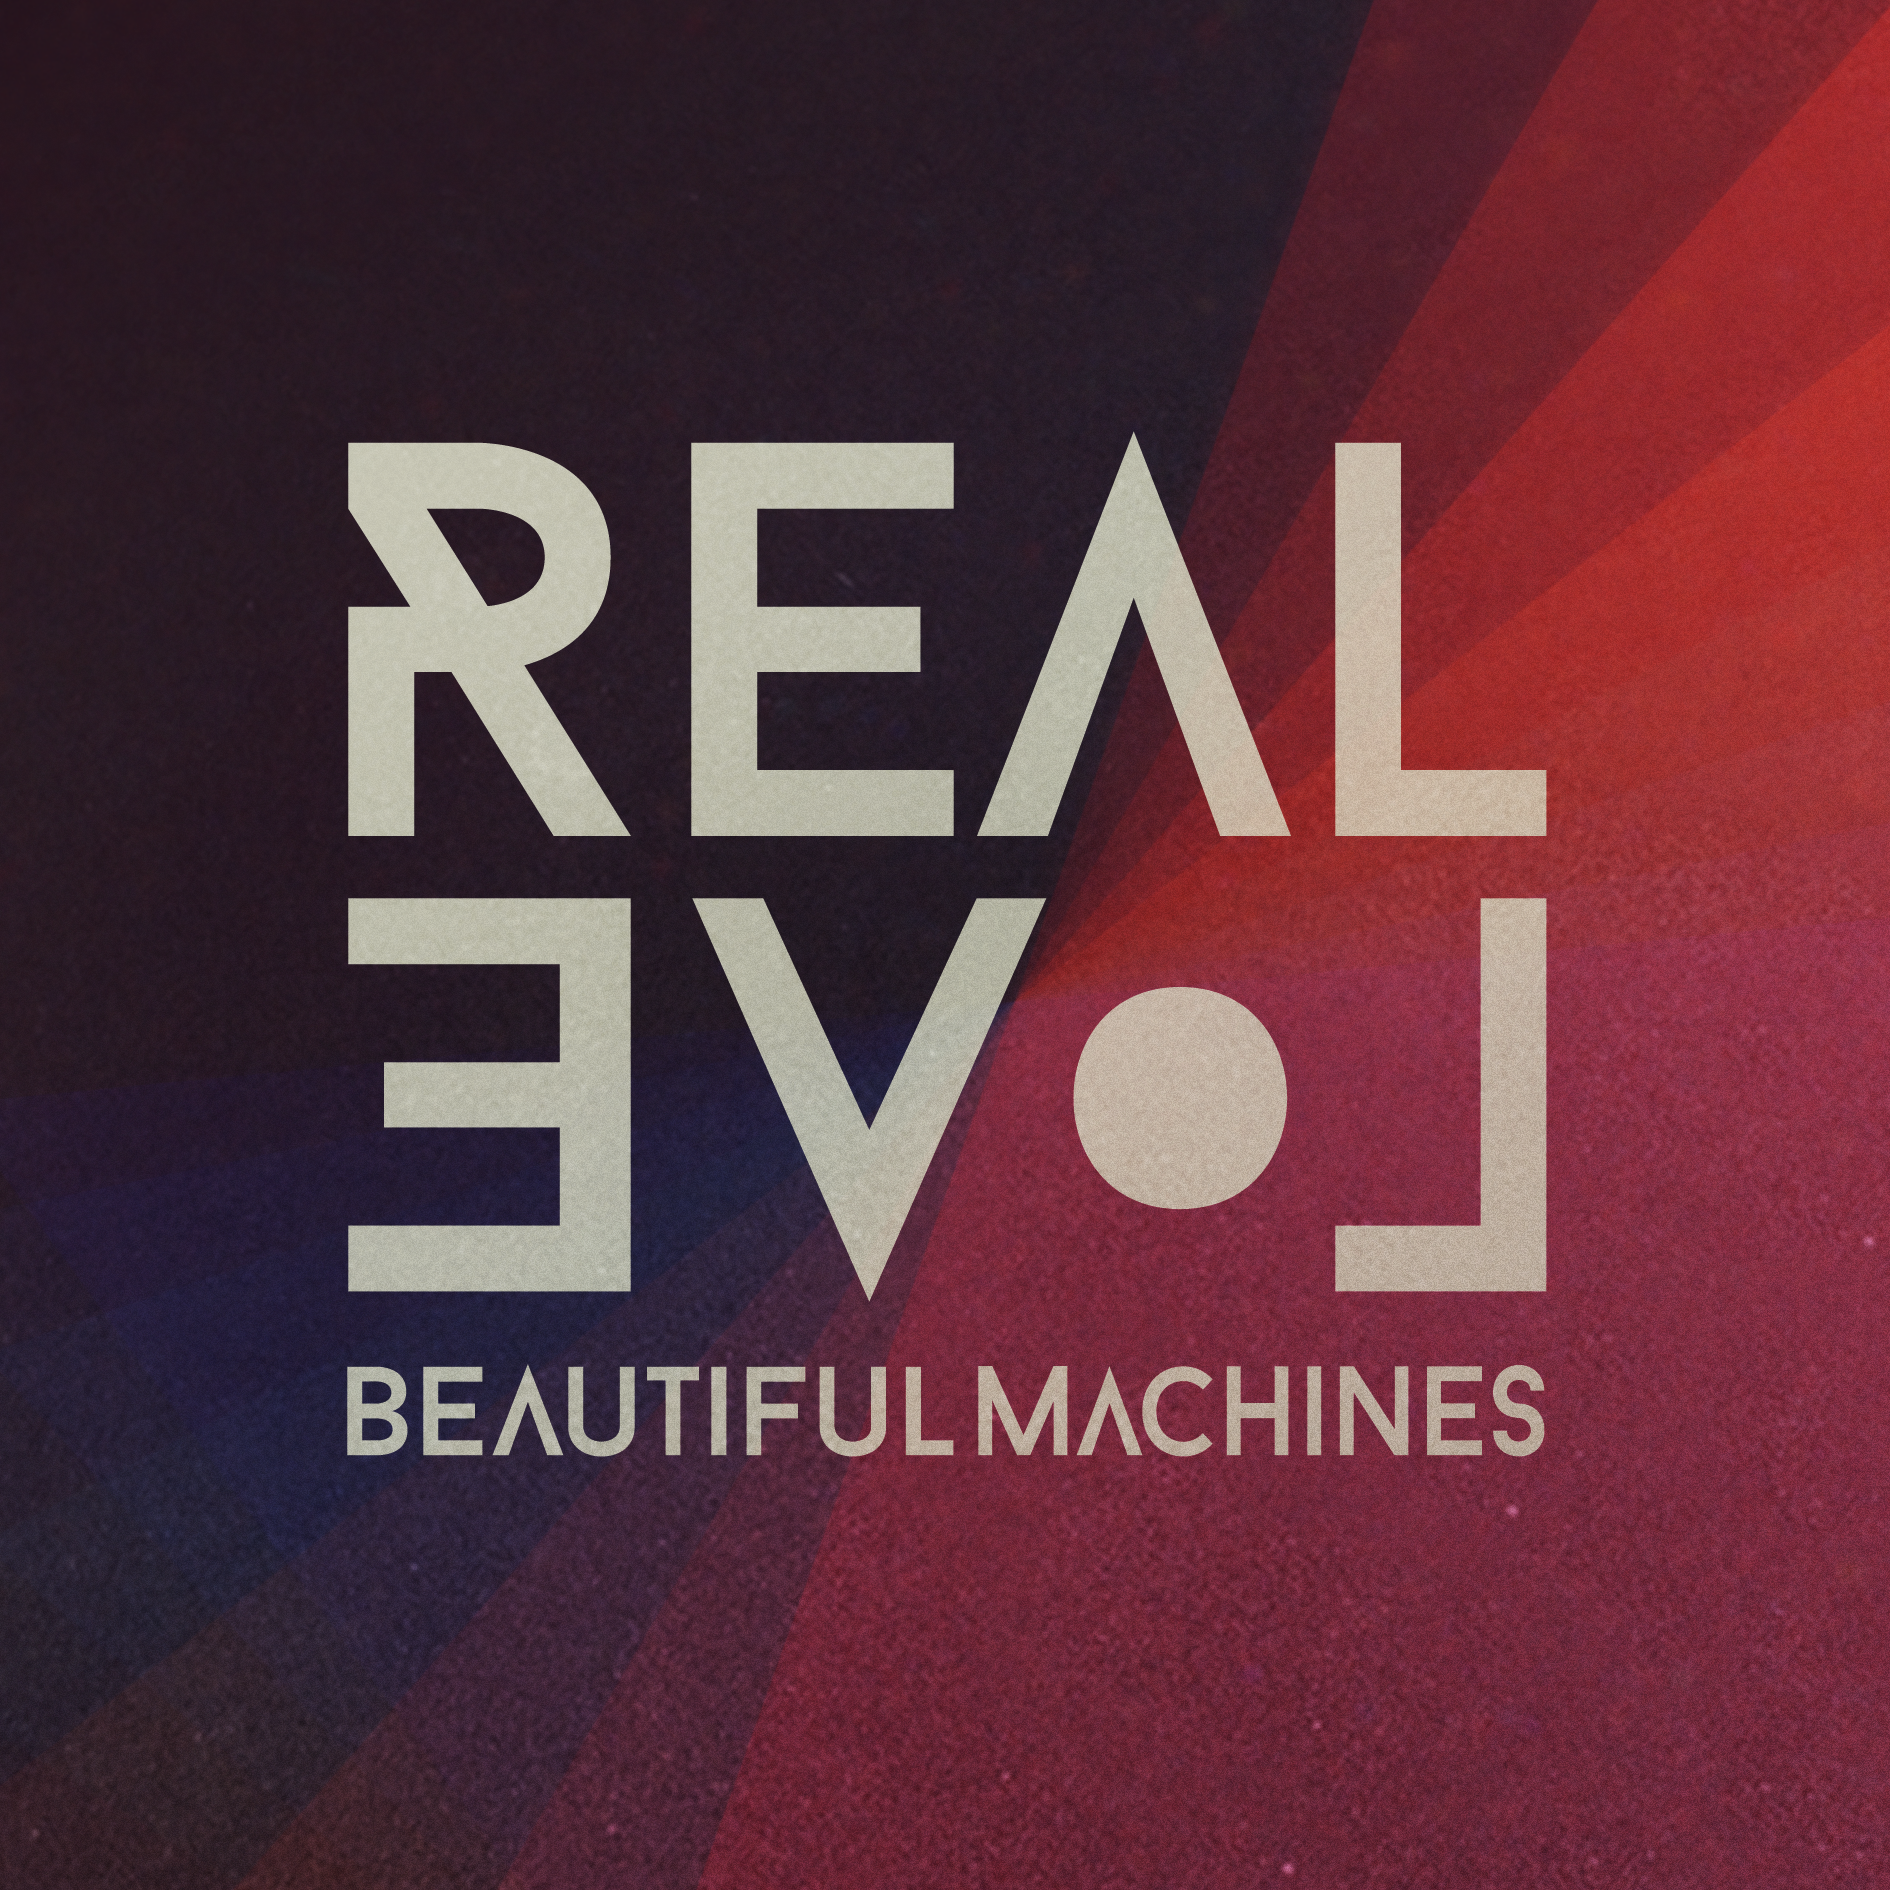 BeautifulMachines_v03_07.png